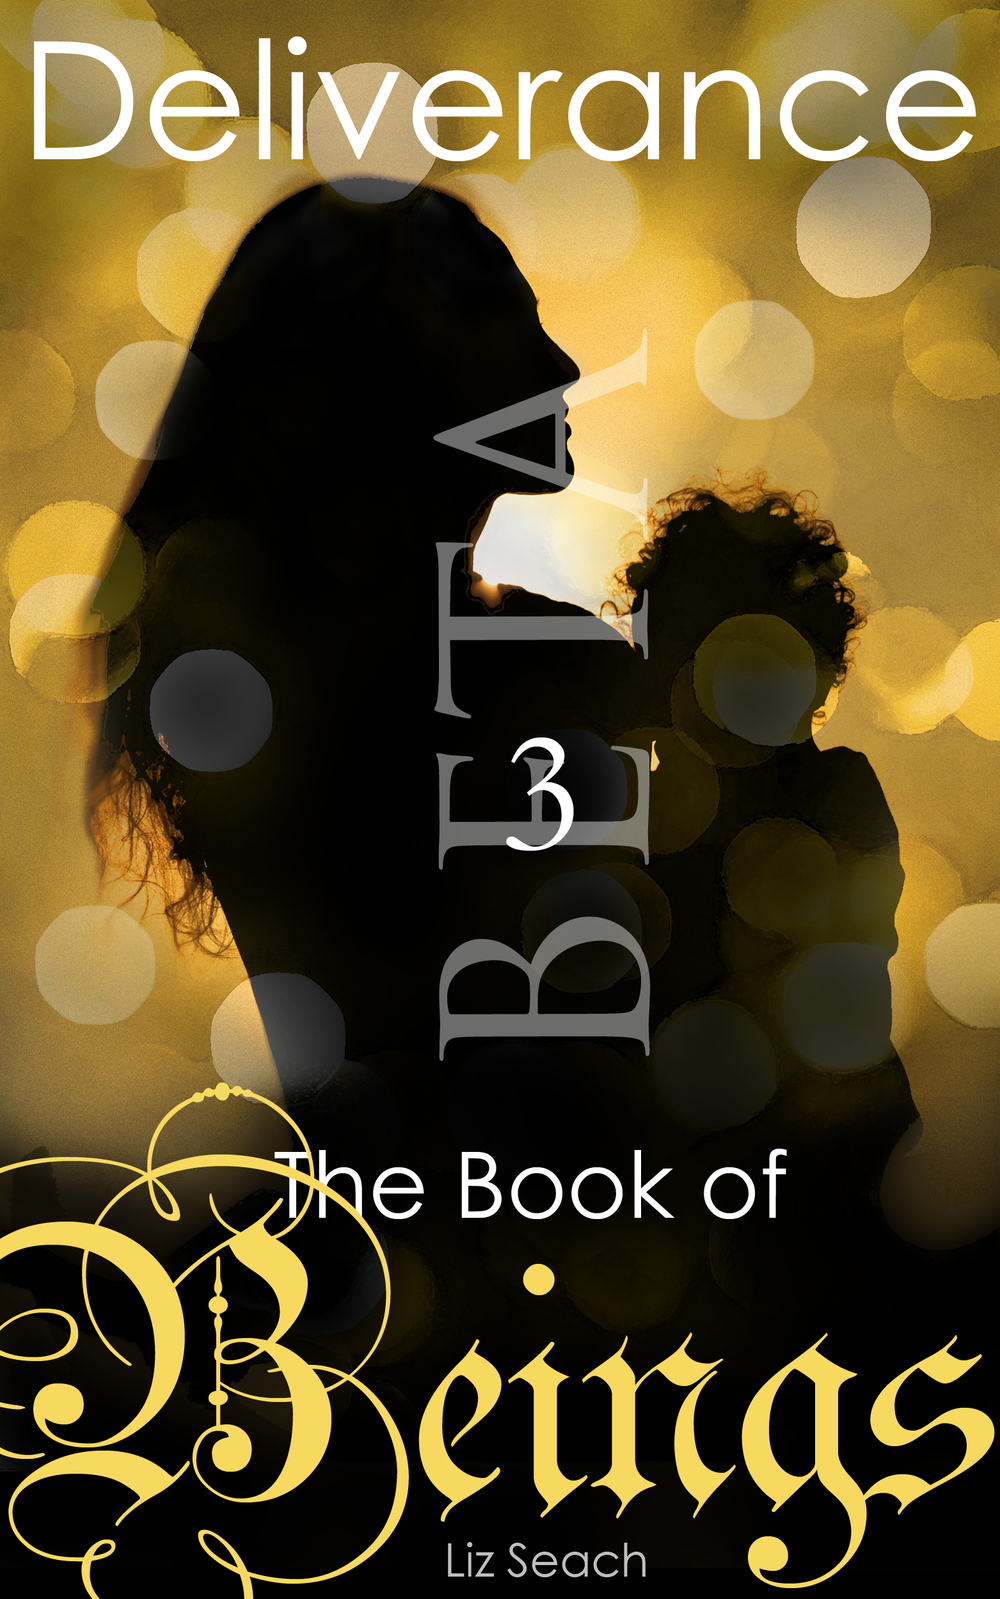 Book of Beings Deliverance cover beta.jpg